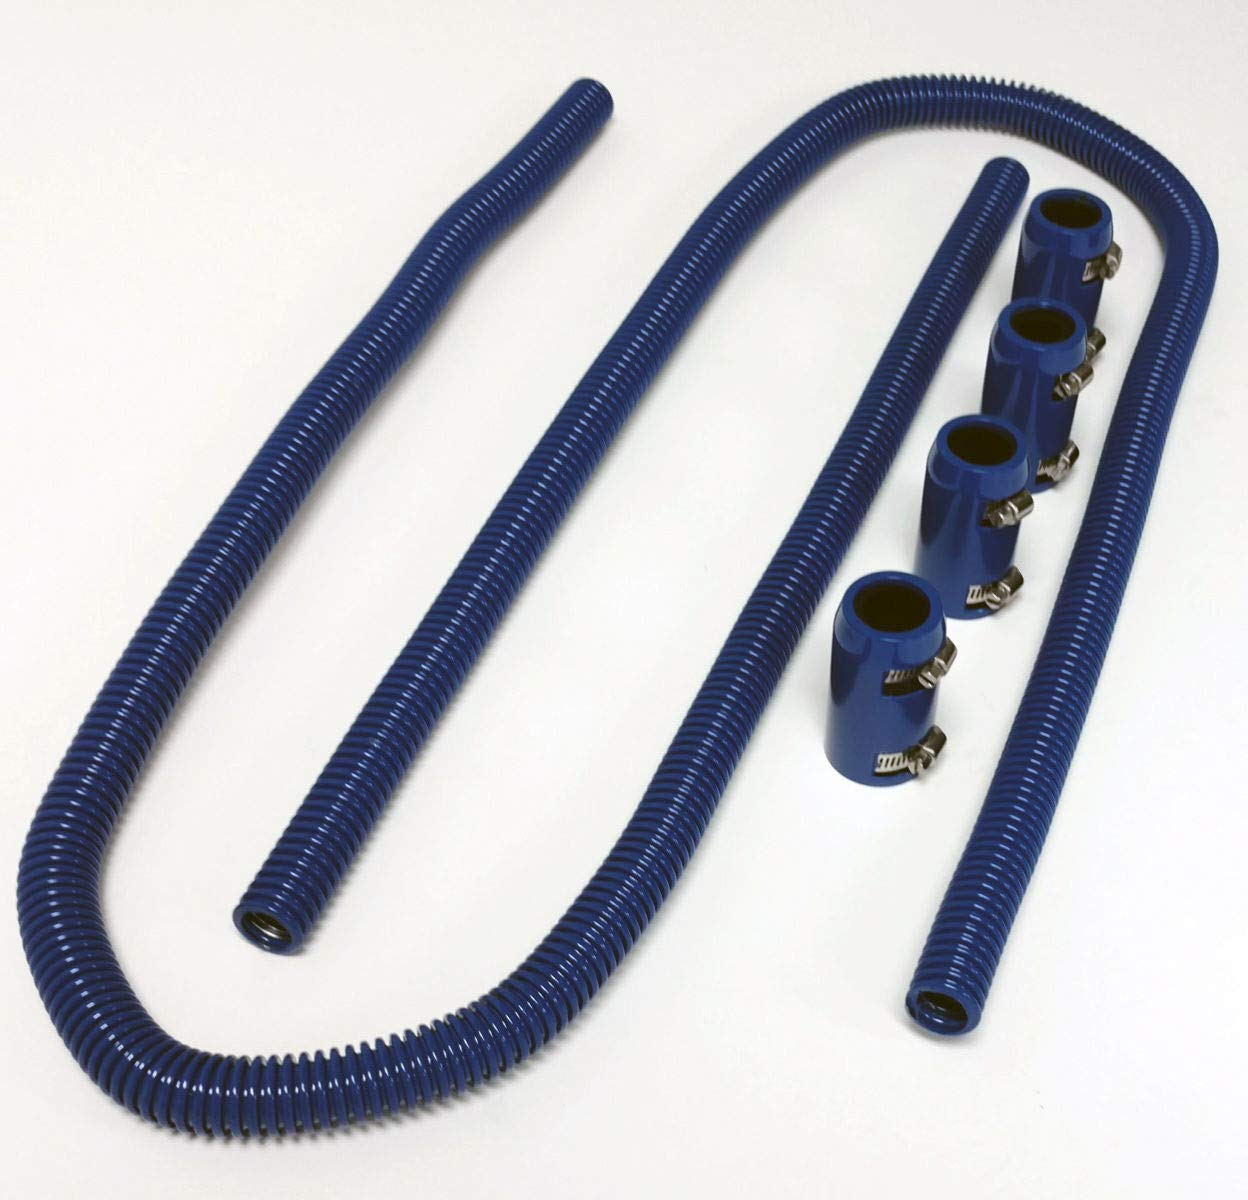 Pirate Mfg 44'' Blue Stainless Steel Heater Hose Kit w/Blue Aluminum End Caps by Pirate Mfg